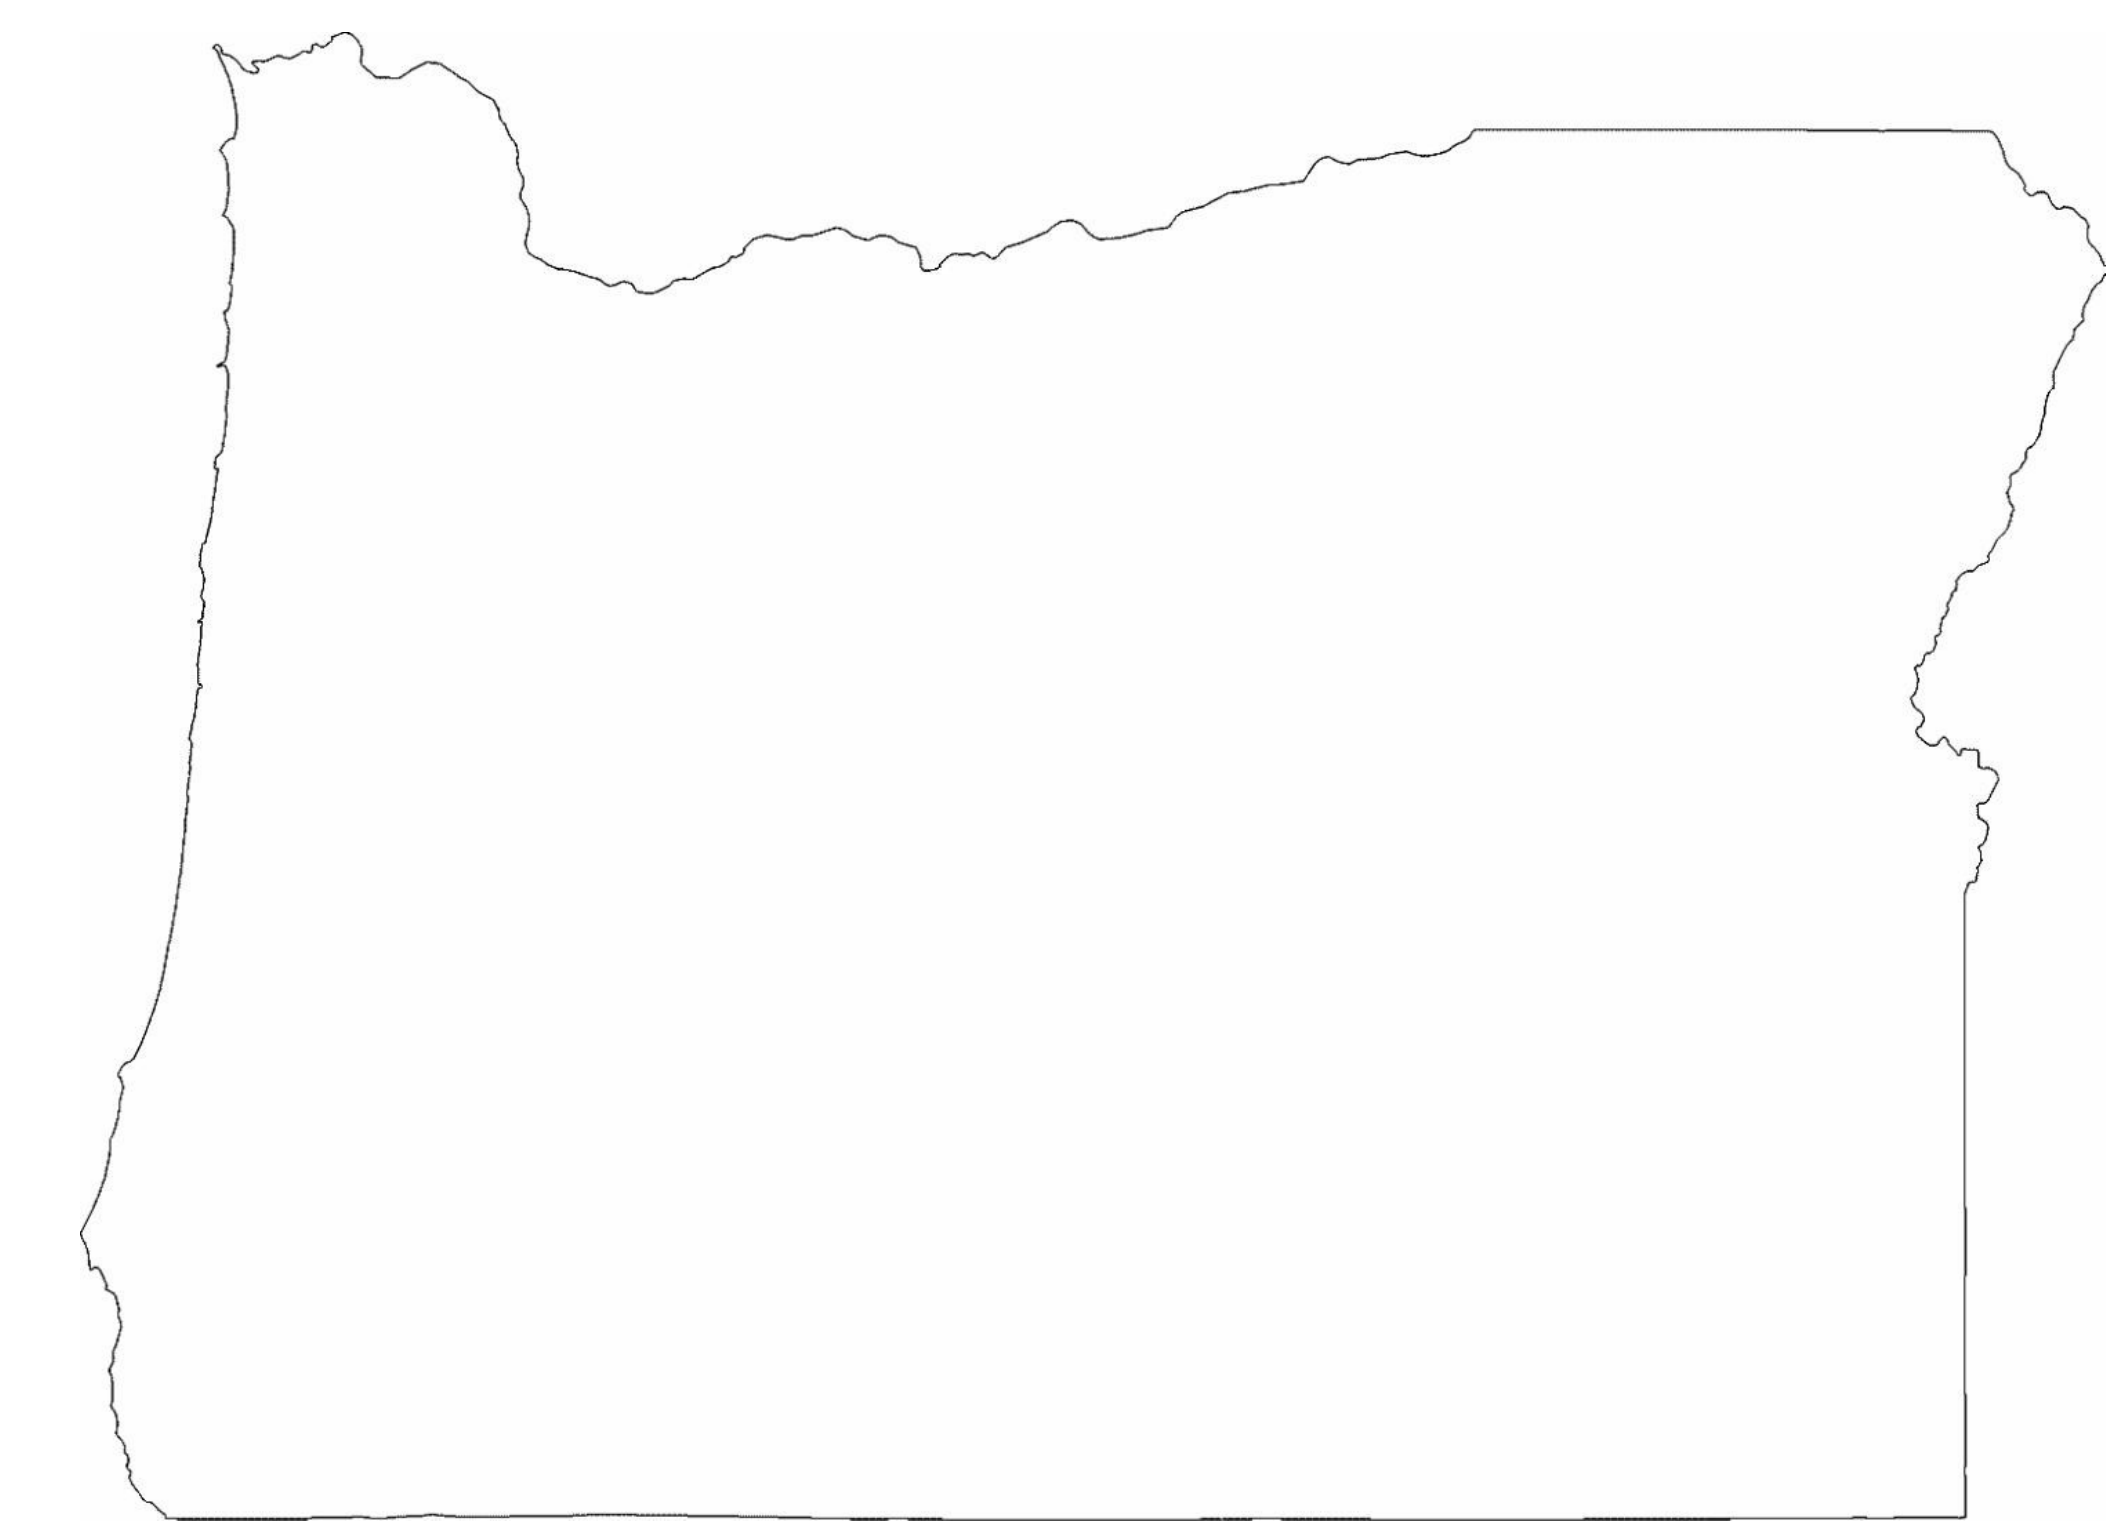 idaho state map outline with Free Oregon State Outline Map on Free Oregon State Outline Map as well Idaho besides Free Usa Powerpoint Map additionally Oklahoma together with Map Of Virginia 3d Shape.